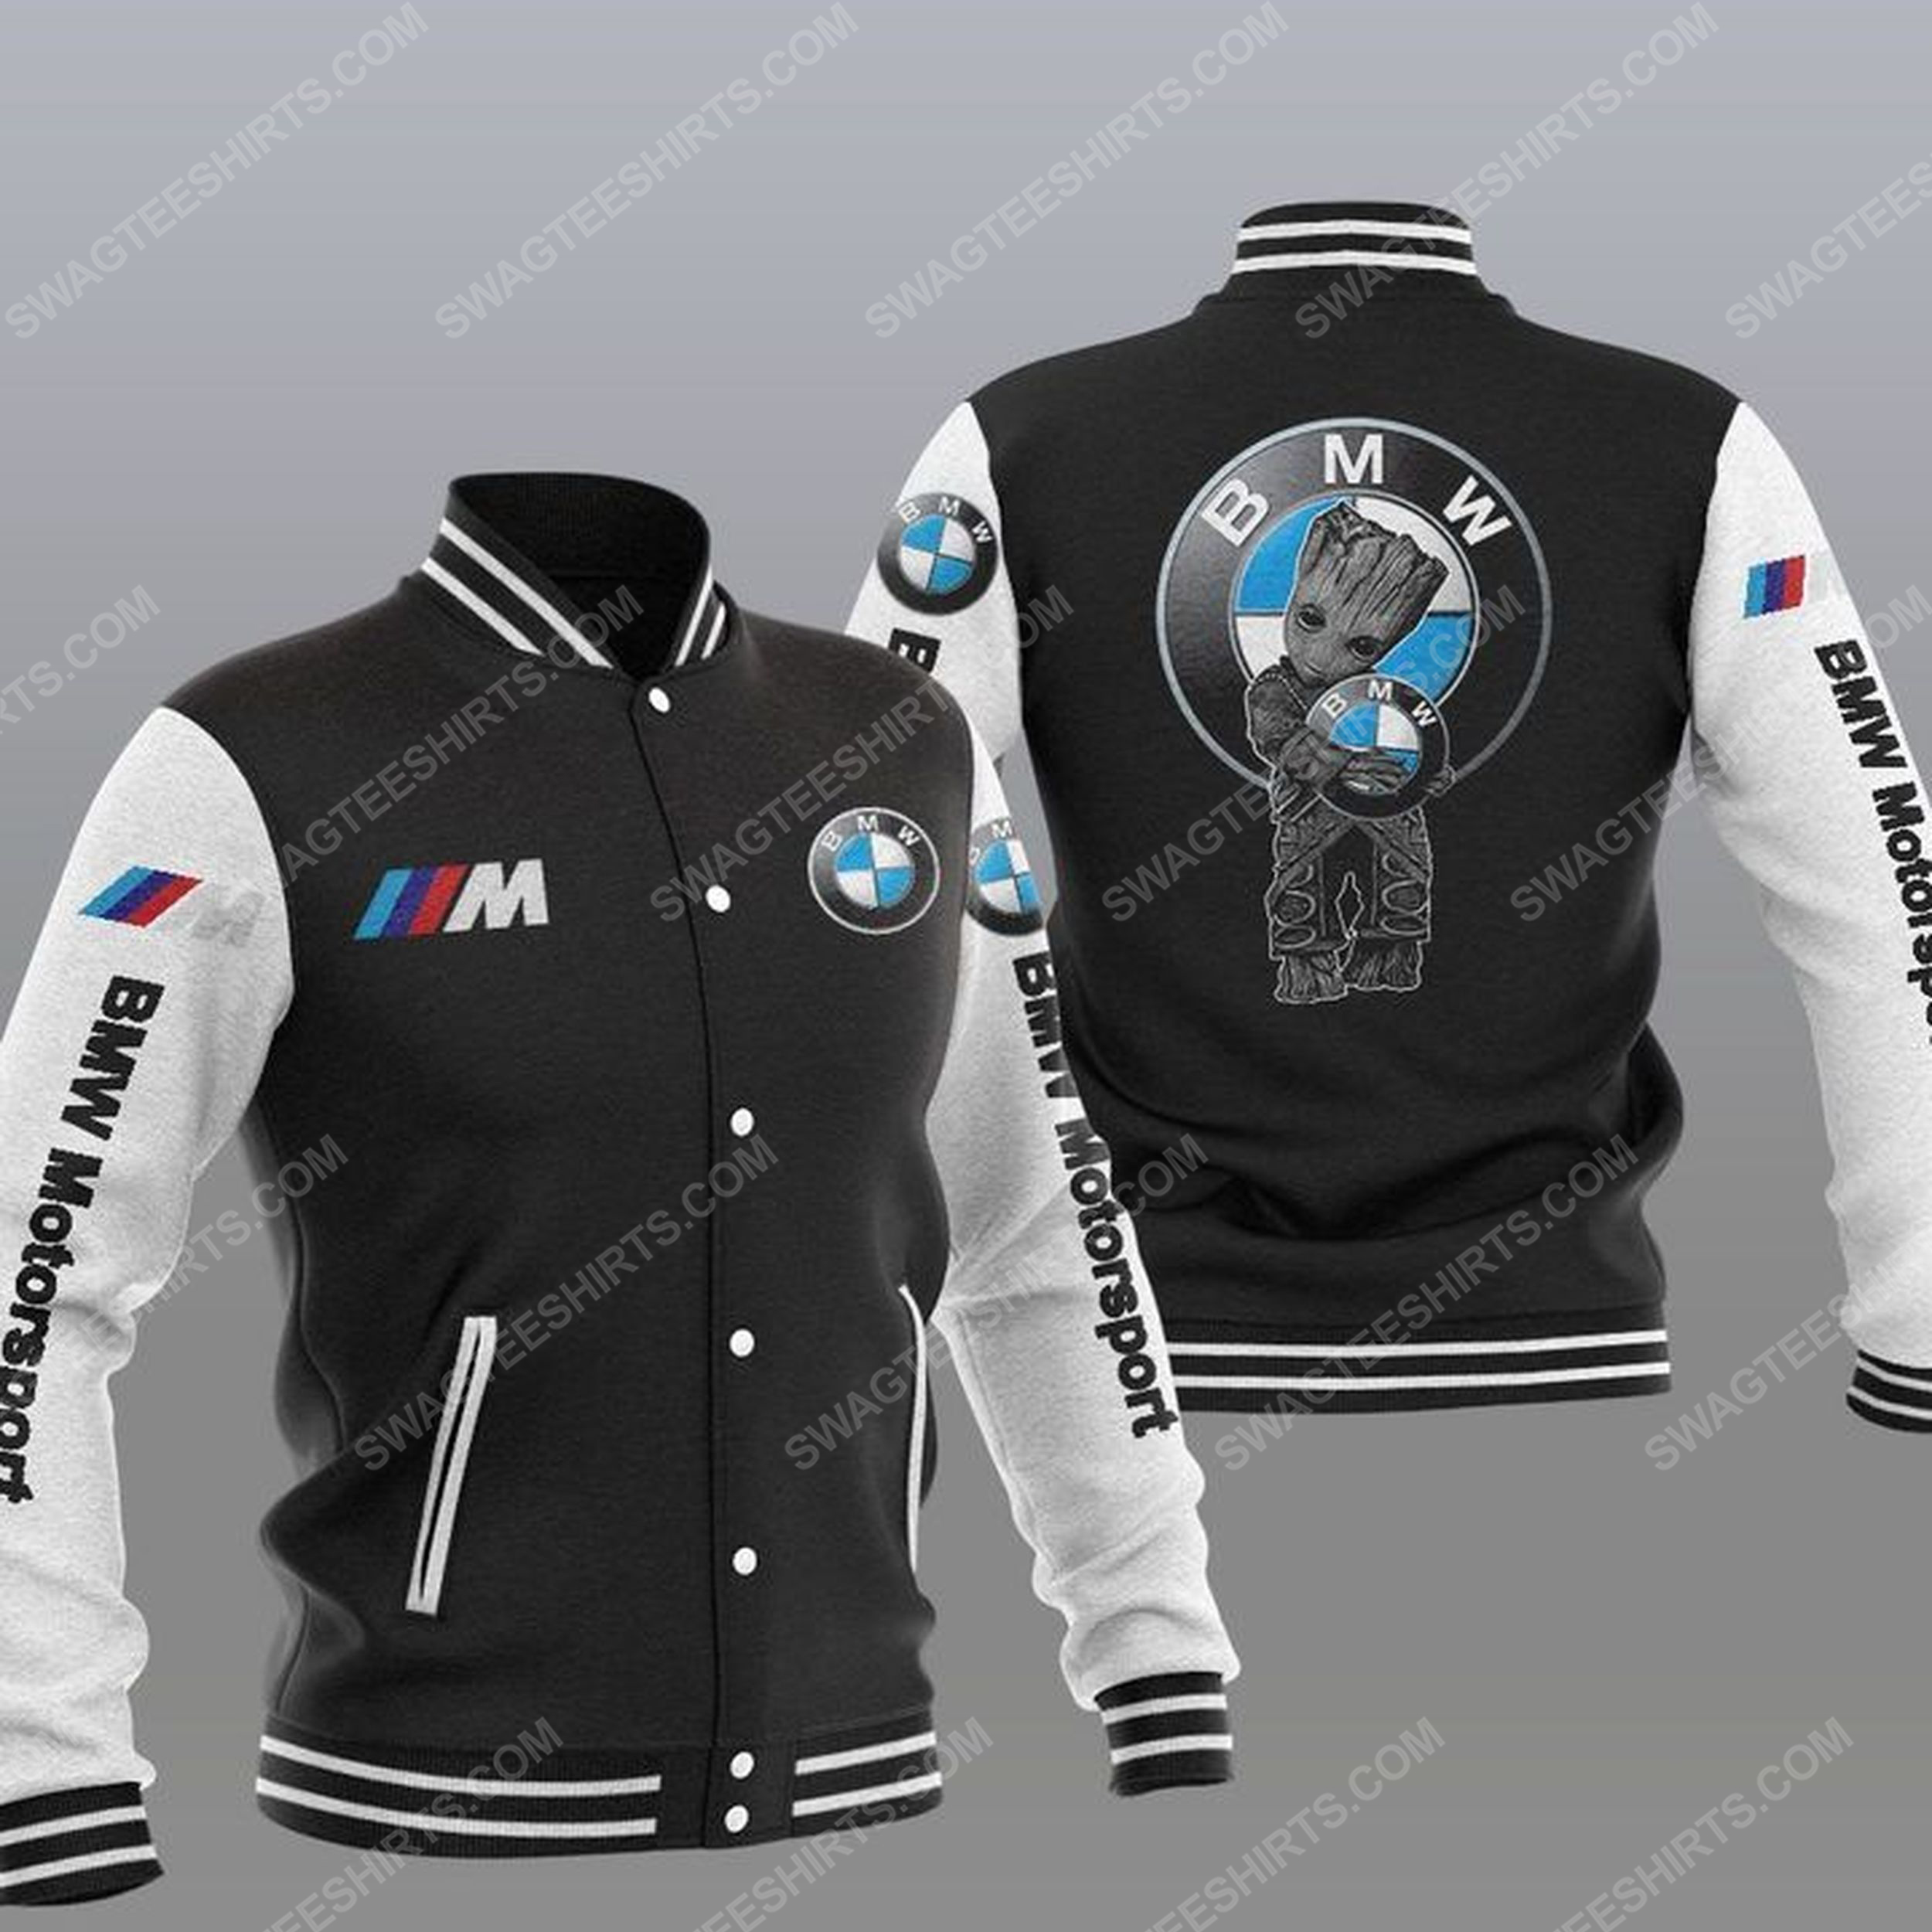 Baby groot and bmw motorsport all over print baseball jacket - black 1